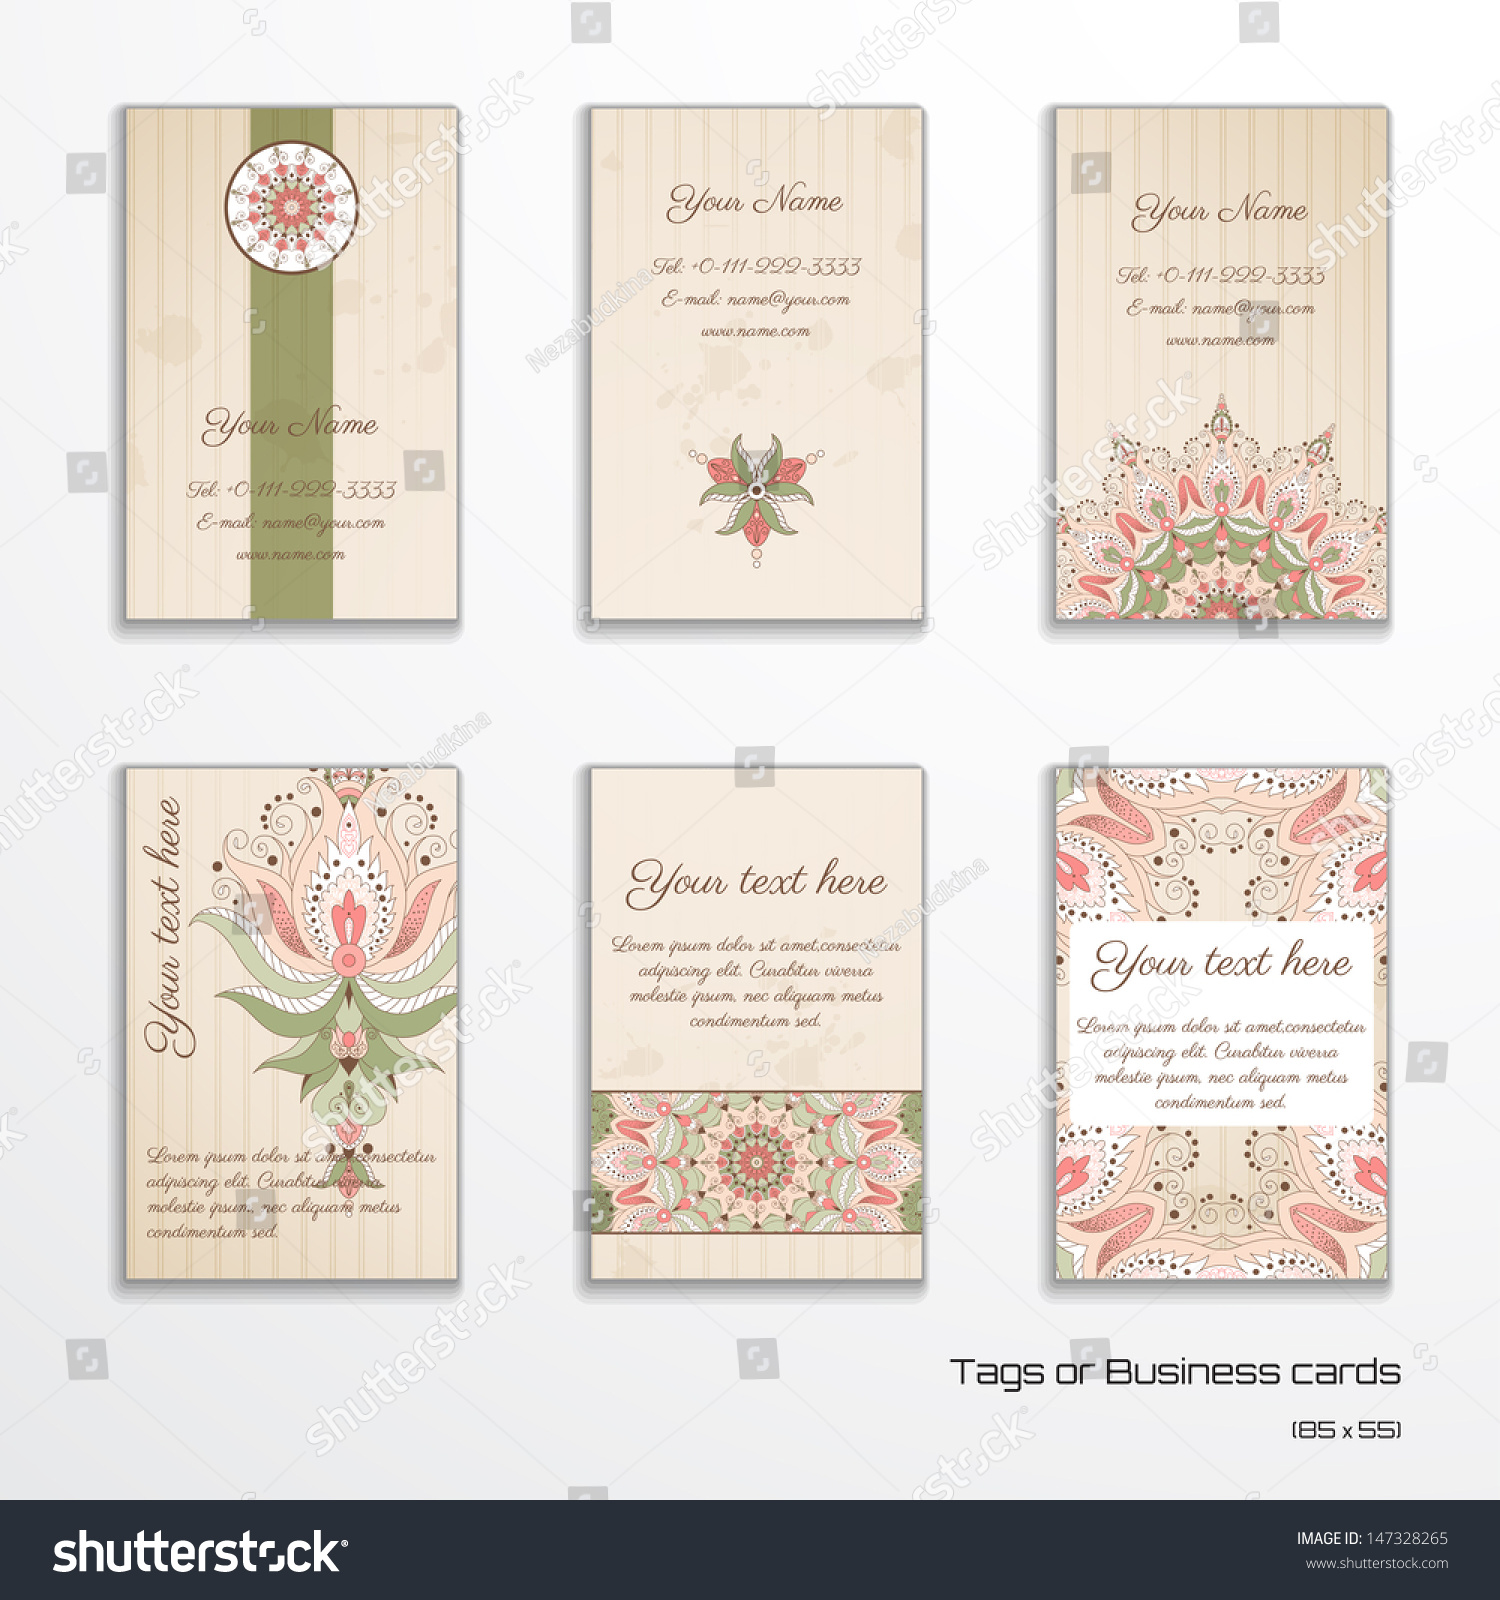 Set Six Vertical Business Cards Tags Stock Vector 147328265 ...